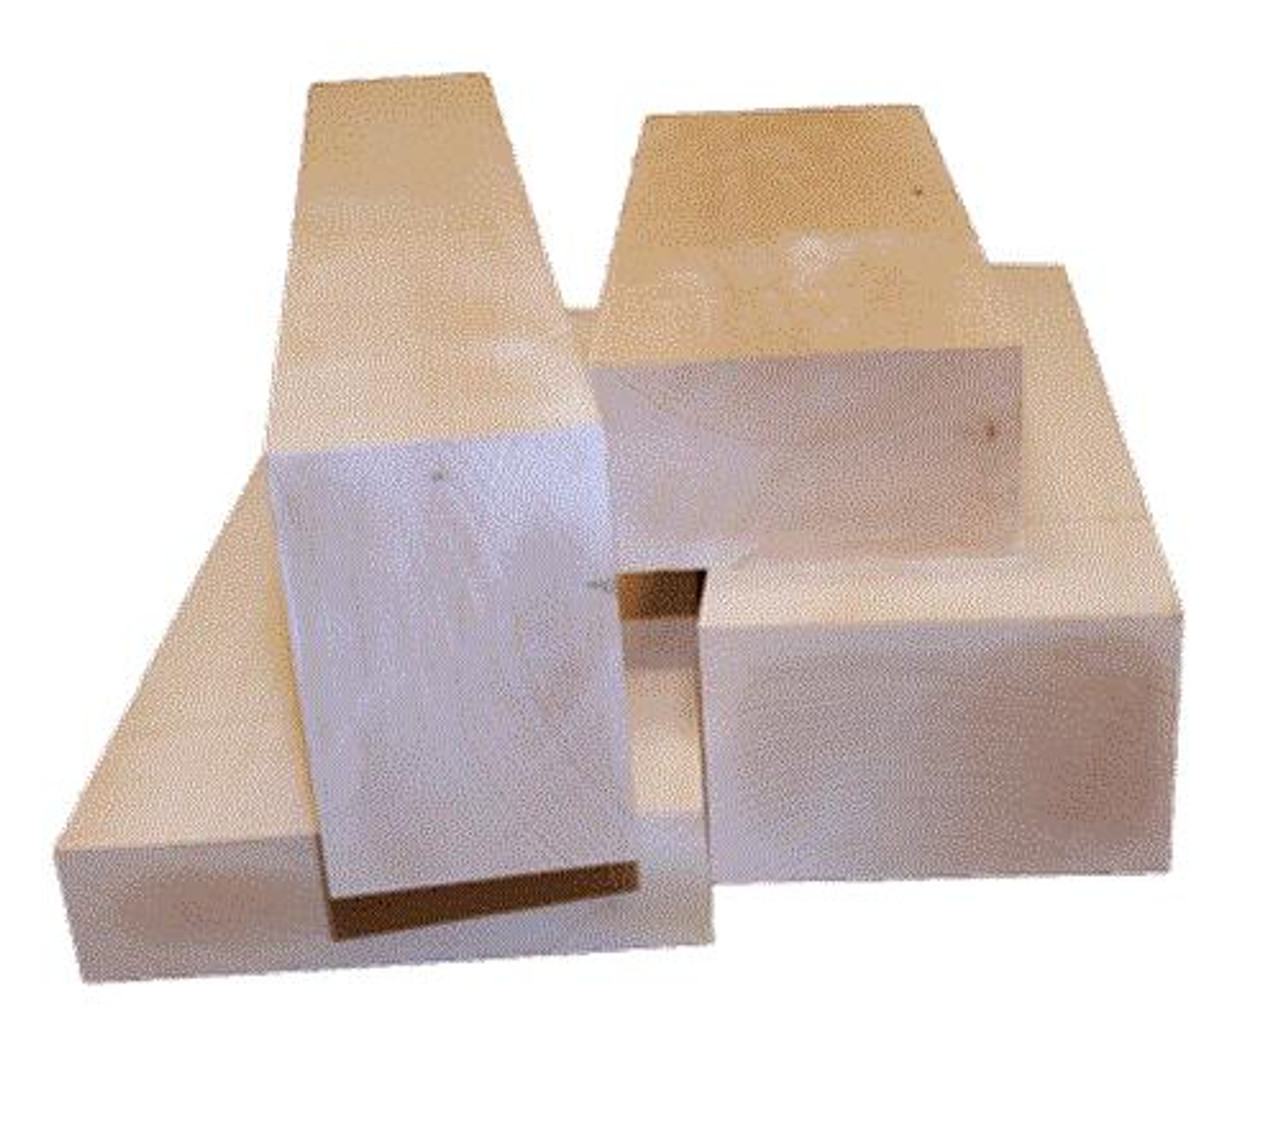 Cherry Tree Toys Basswood Carving Blank 4 x 8 x 18